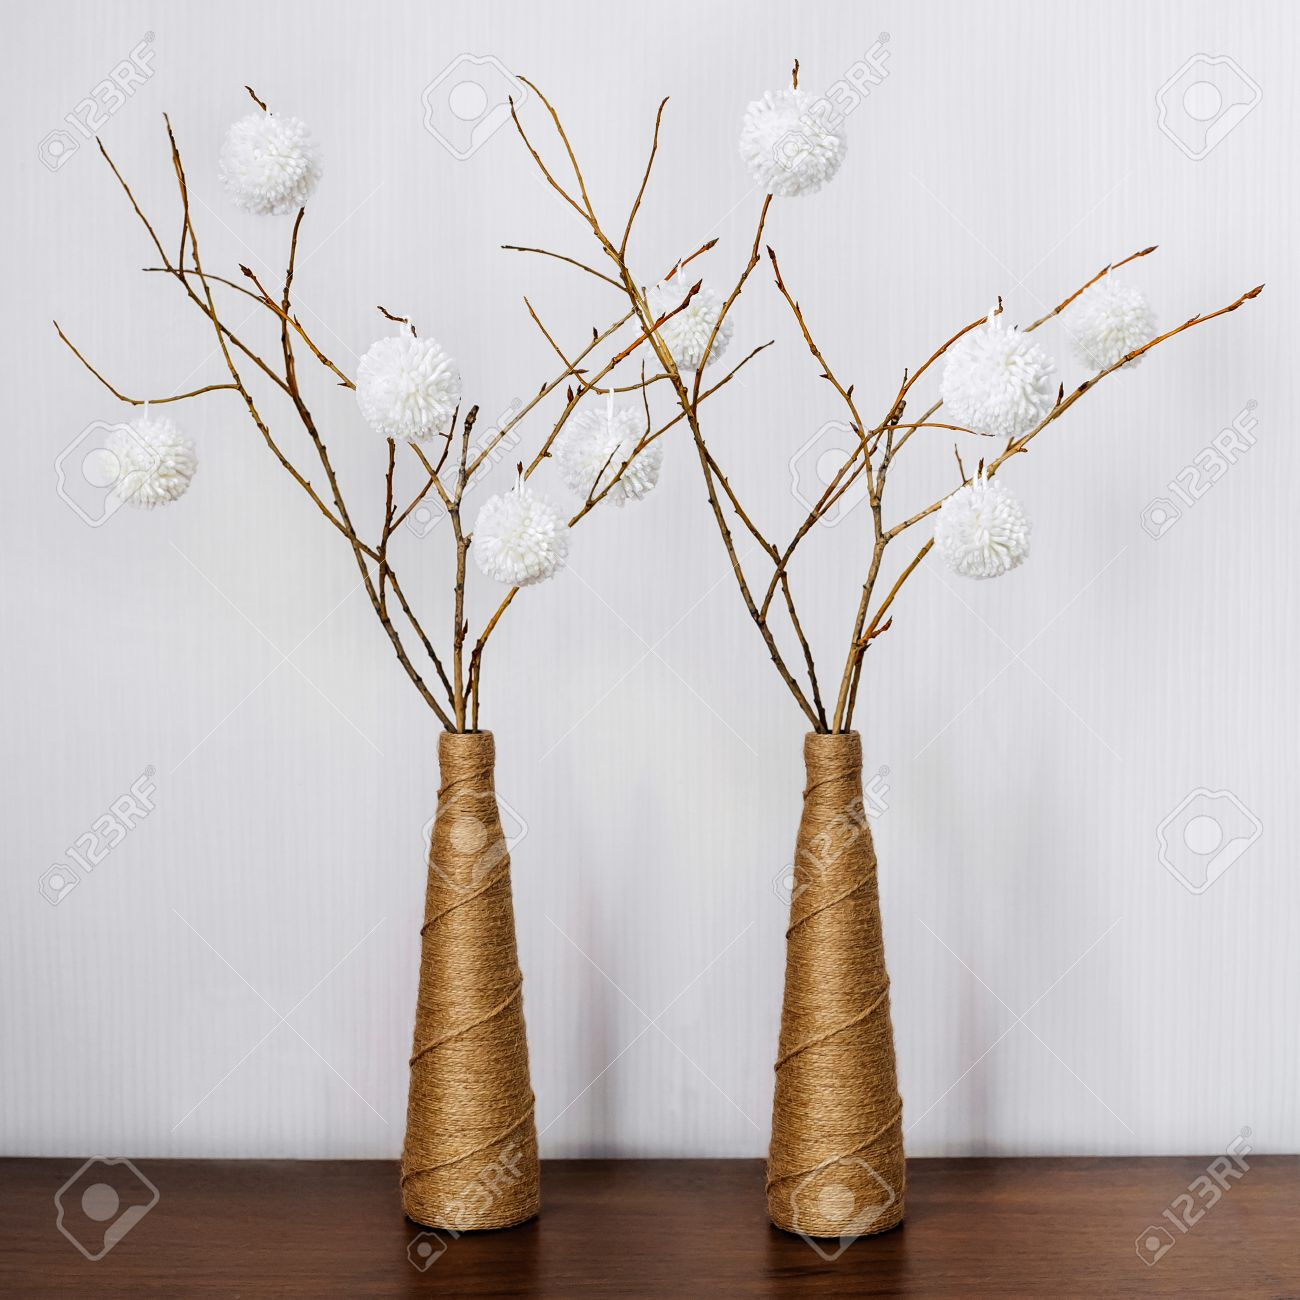 Vase With Dry Branches Adorned With White Balls On A Wooden Table ...